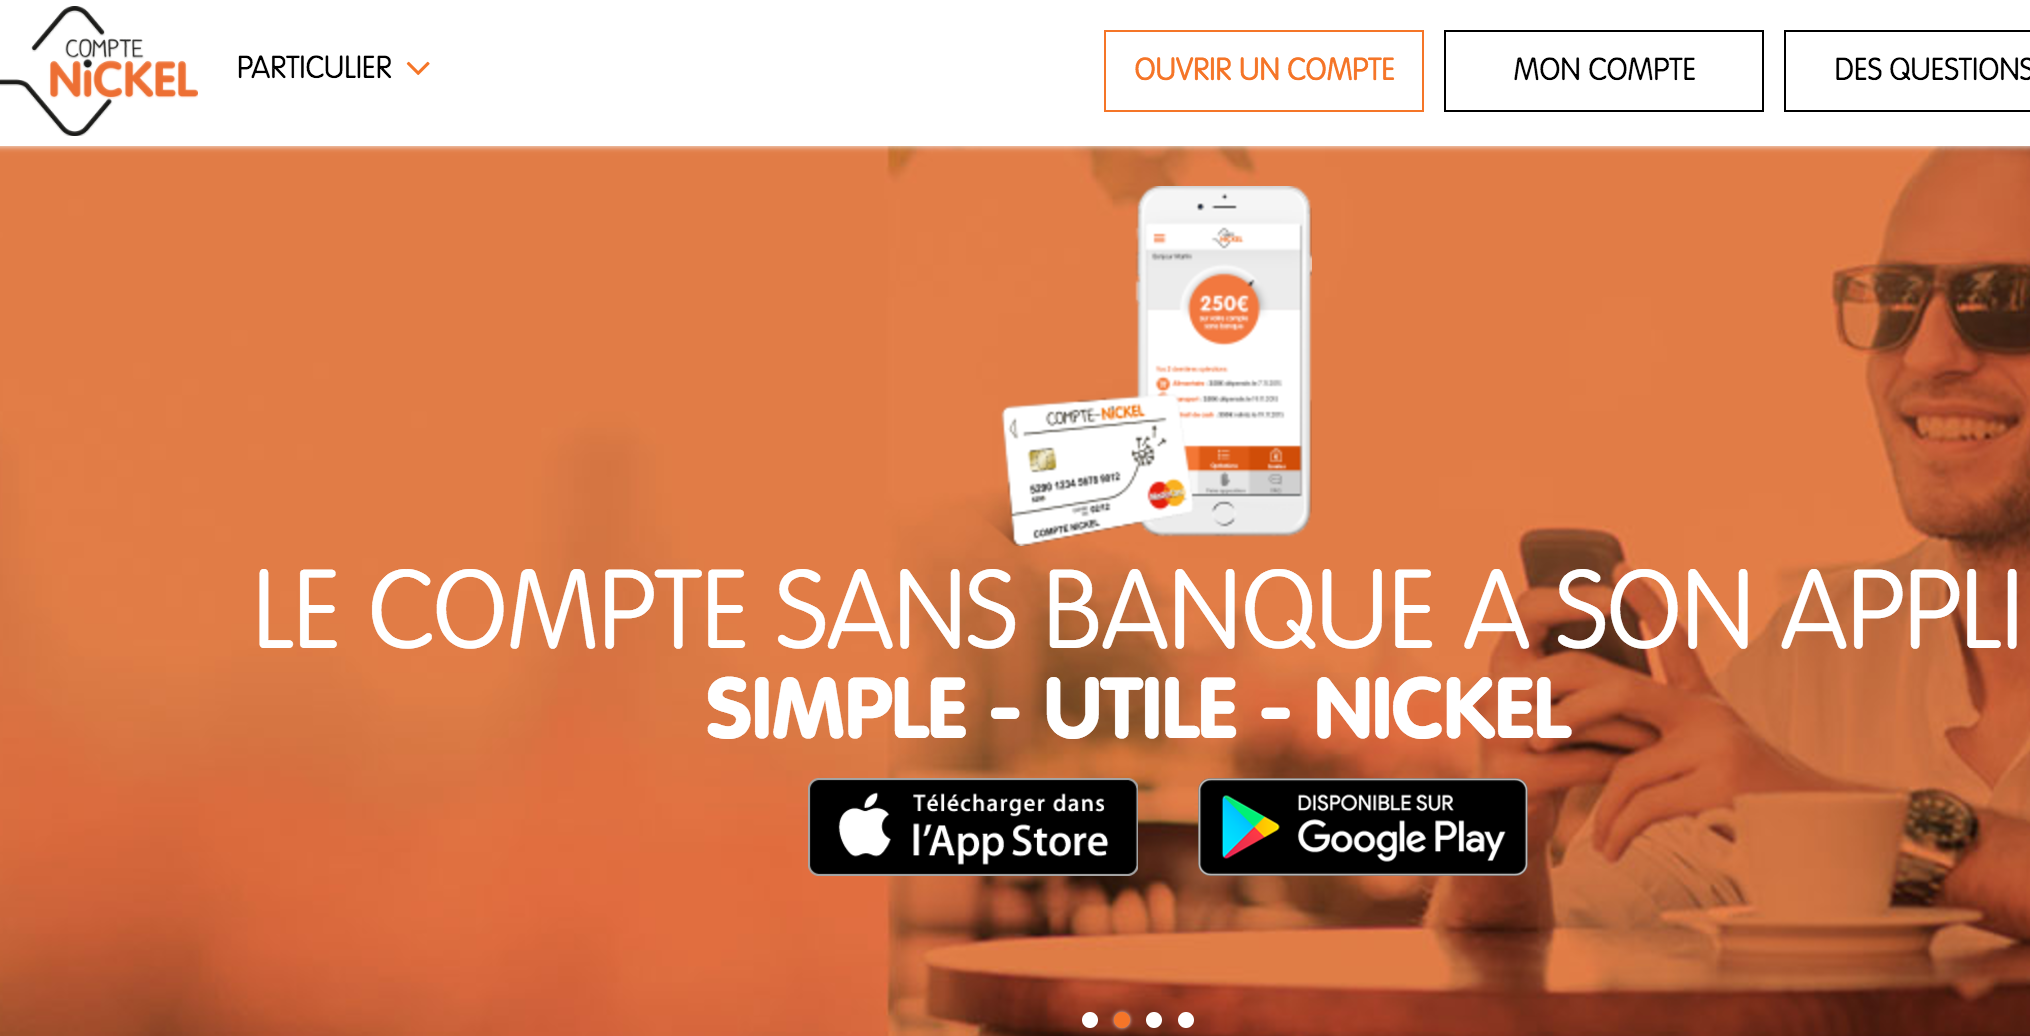 Compte Nickel couvert